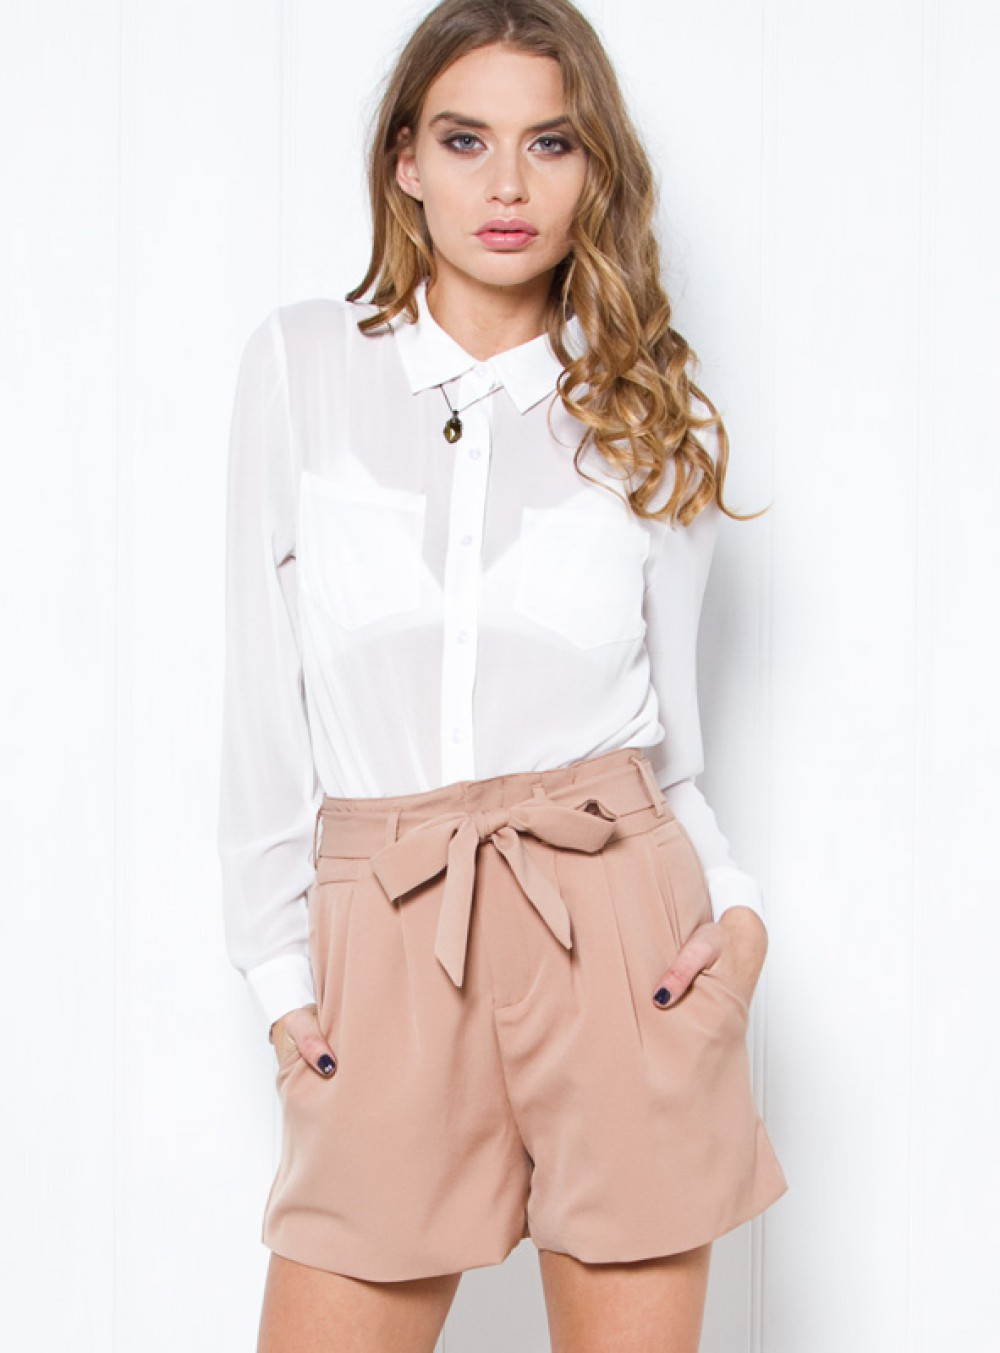 o-peach-shorts-white-collared-shirt-bow-paperbag-howtowear-fashion-style-outfit-hairr-spring-summer-lunch.jpg